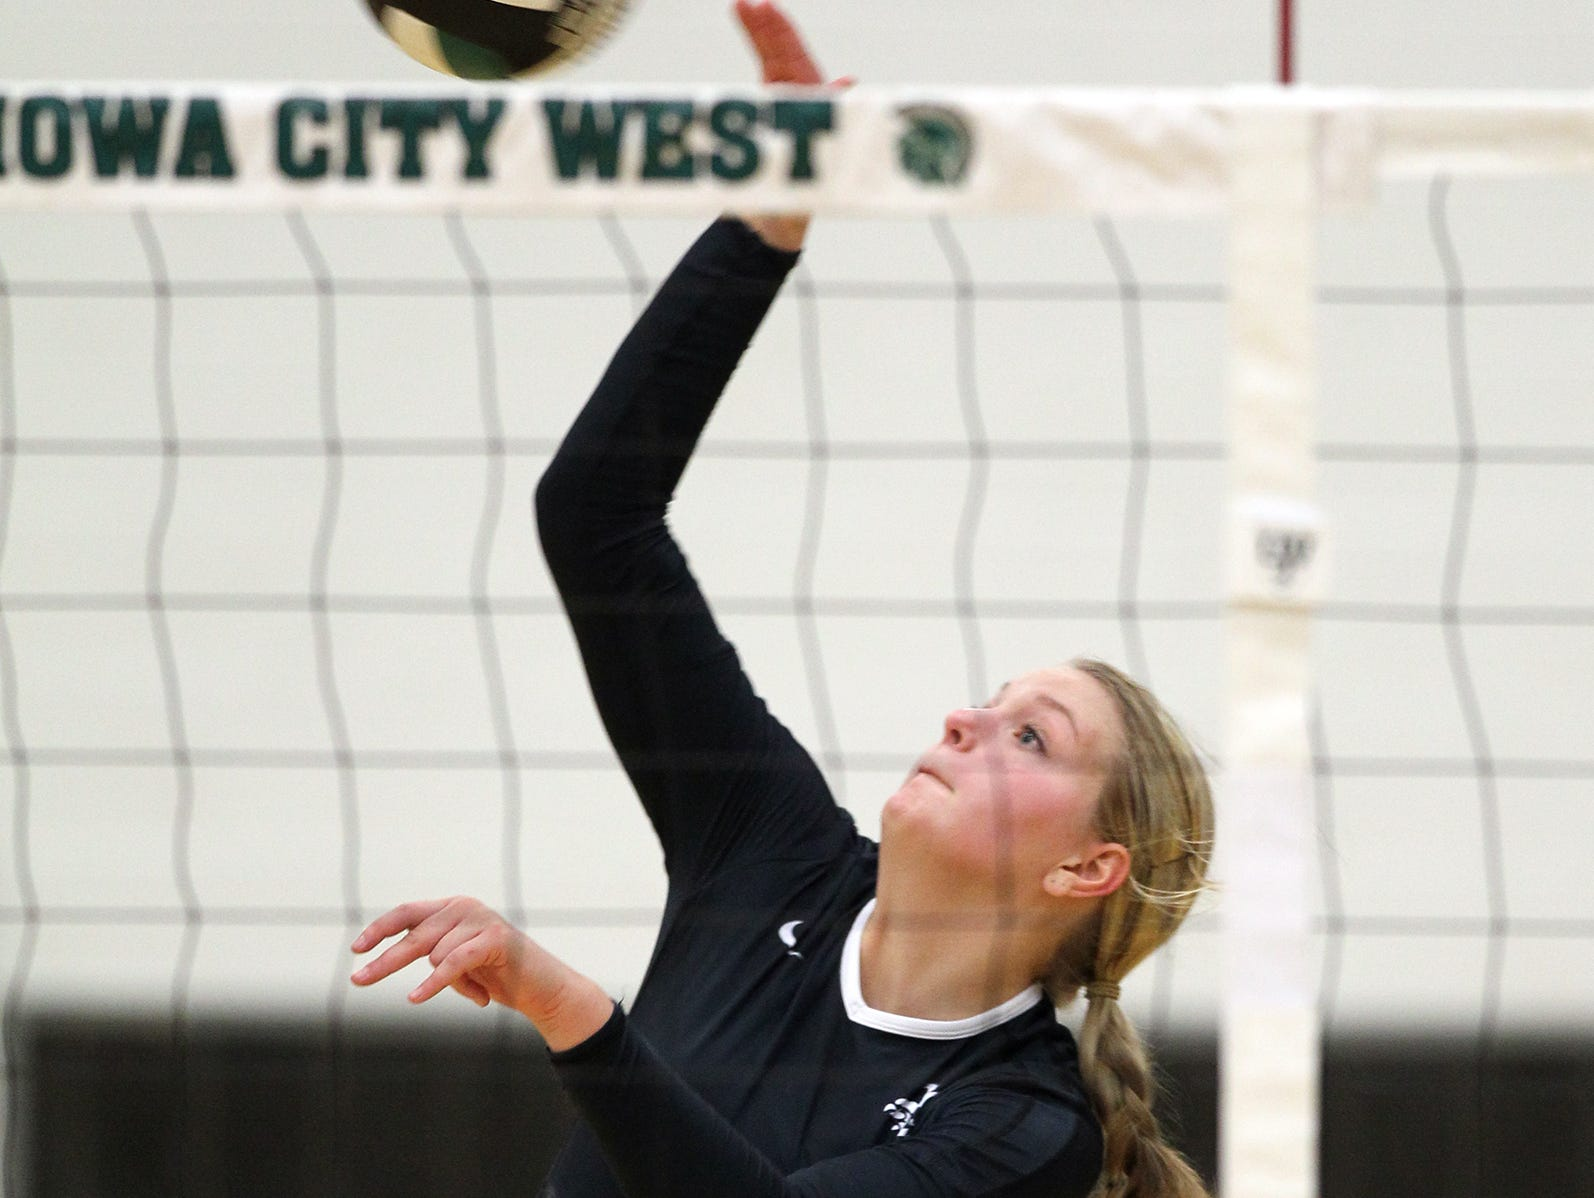 City High's Shannon James goes for a kill during the Little Hawks' regional semifinal game at West High on Thursday, Oct. 29, 2015.